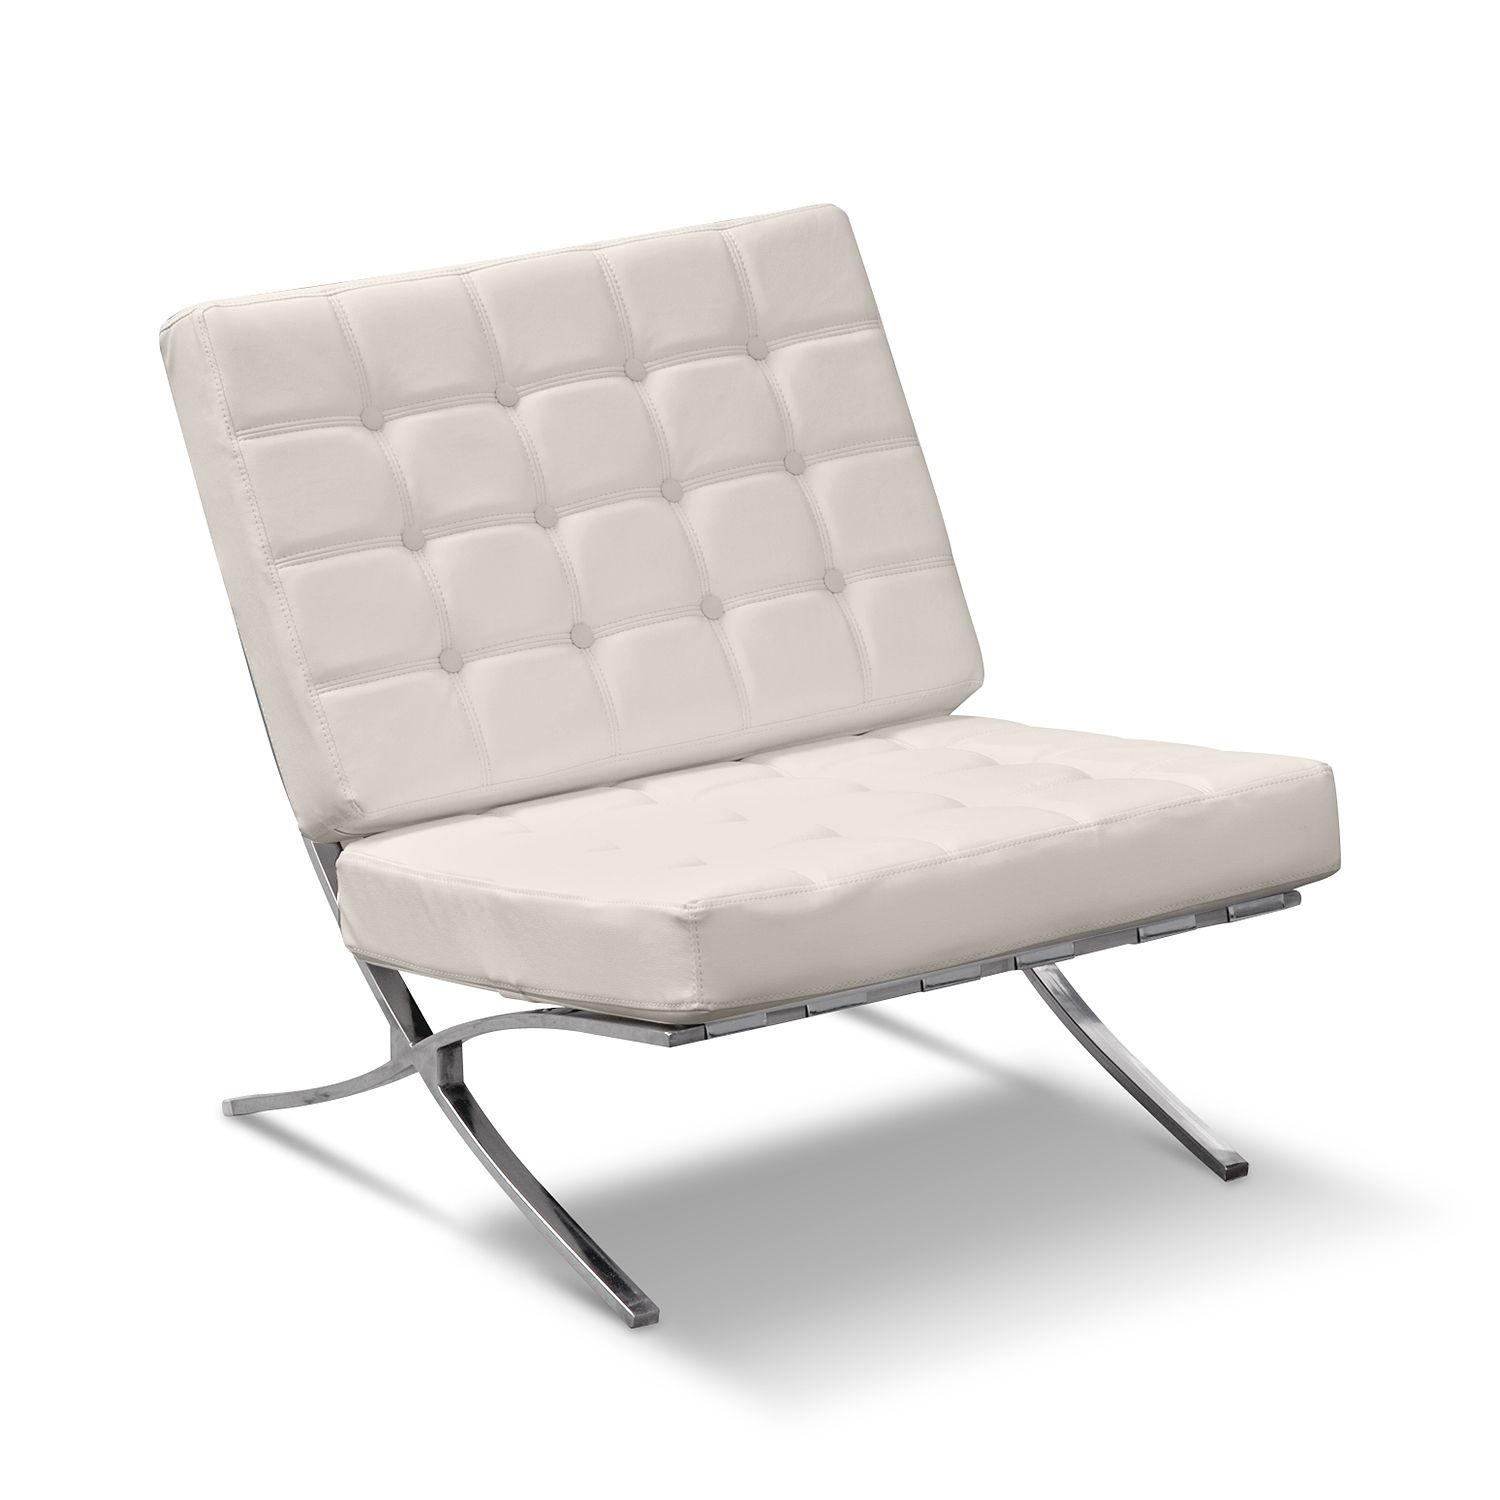 Modern White Faux Leather Accent Chairs With Stainless Steel Cross X Base  Legs For Minimalist Home Furnishing Ideas